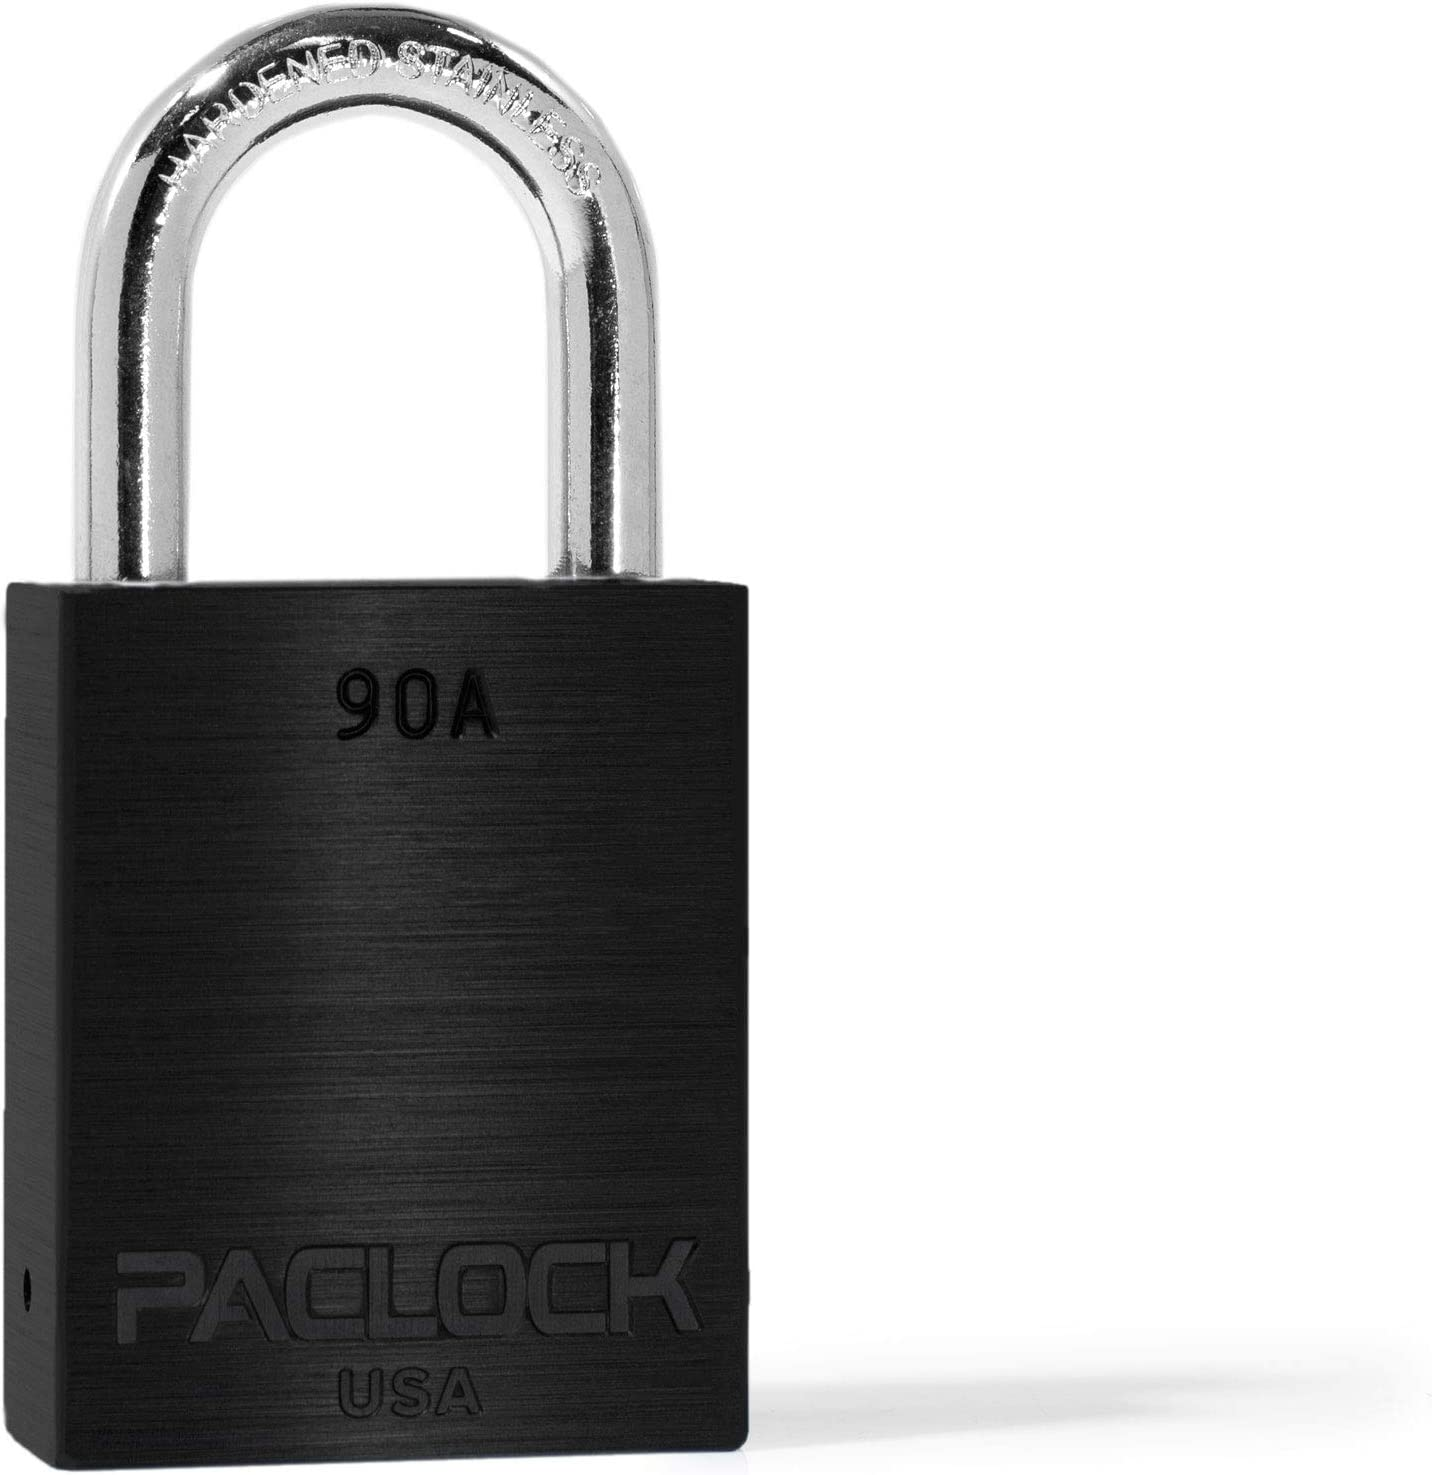 PACLOCK's 90A Series Padlock Buy American Act Clearance SALE Limited time Tulsa Mall 16 Compliant 1-3